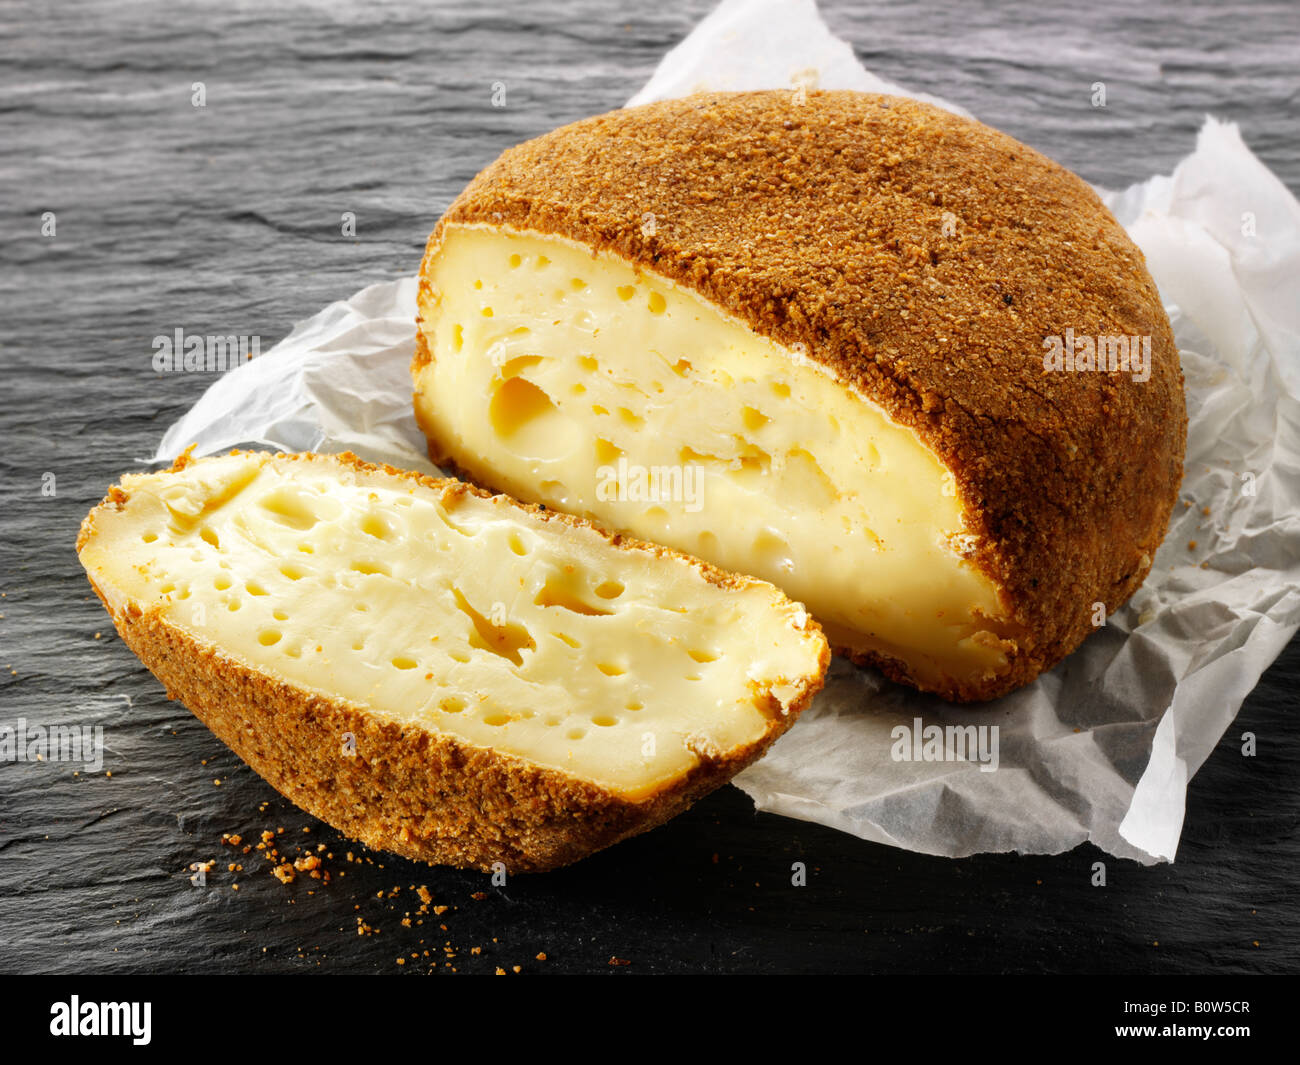 La Pucelle Regional French cows milk cheese from Normandy with apple liqueur from Fromagerie Maitre Pennec - Stock Image